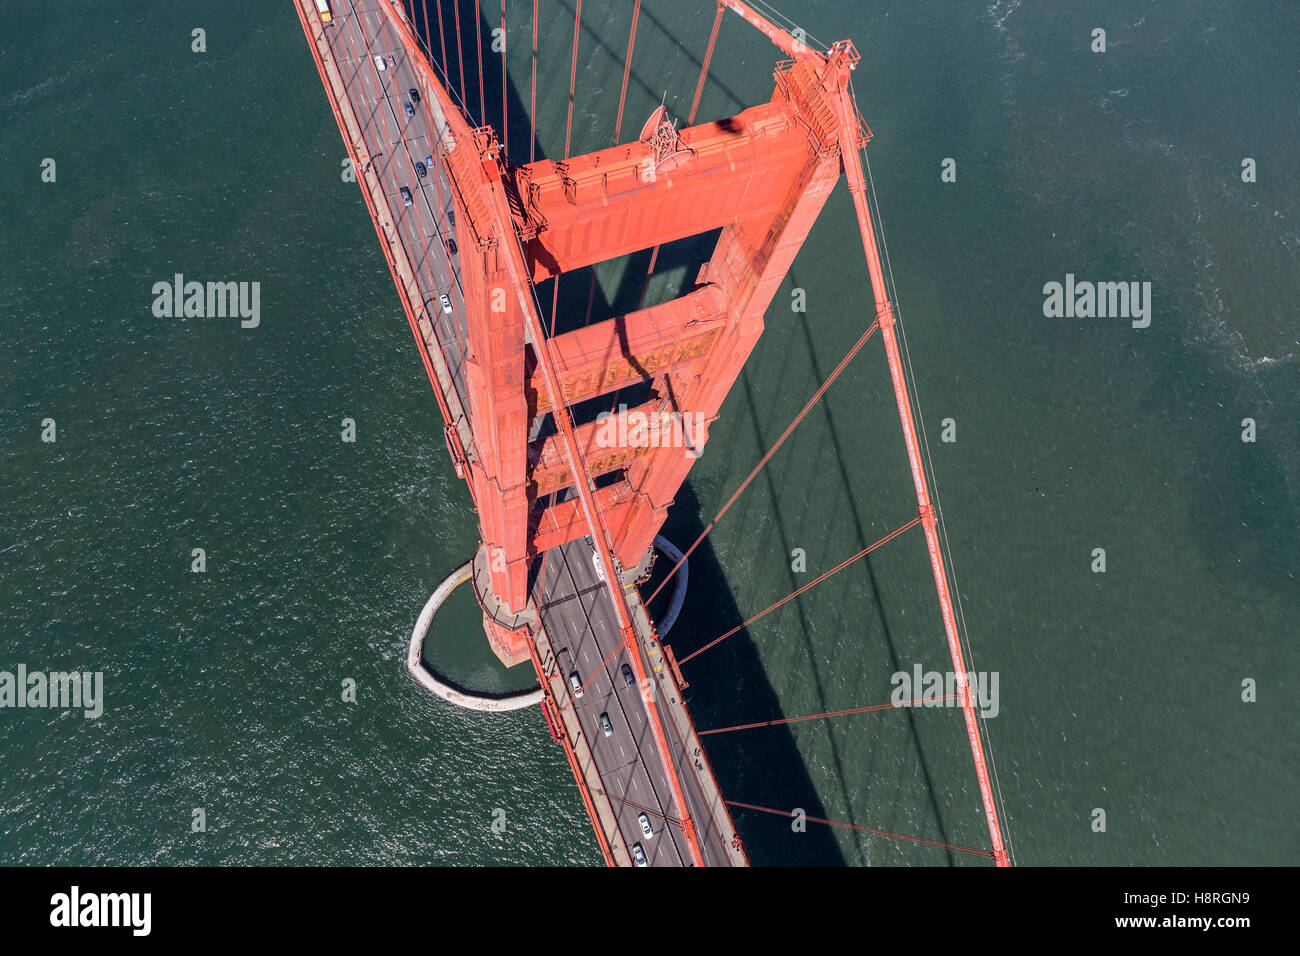 Aerial down view of Golden Gate Bridge tower and San Francisco Bay. - Stock Image